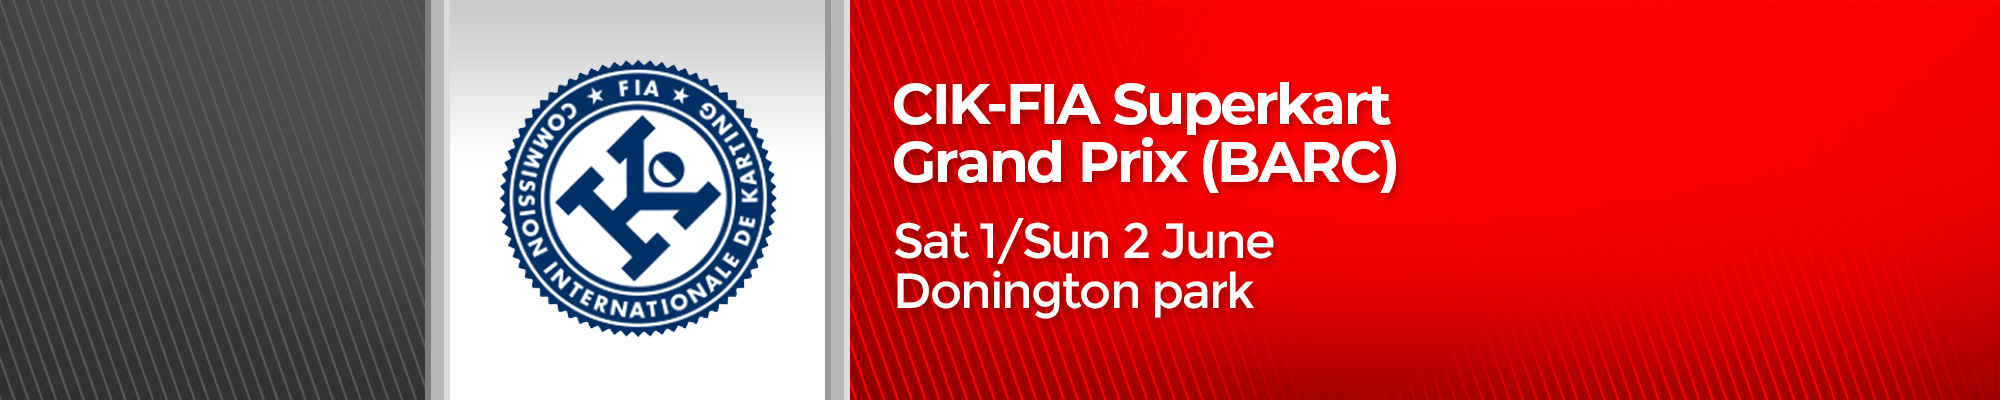 CIK-FIA Superkart Grand Prix